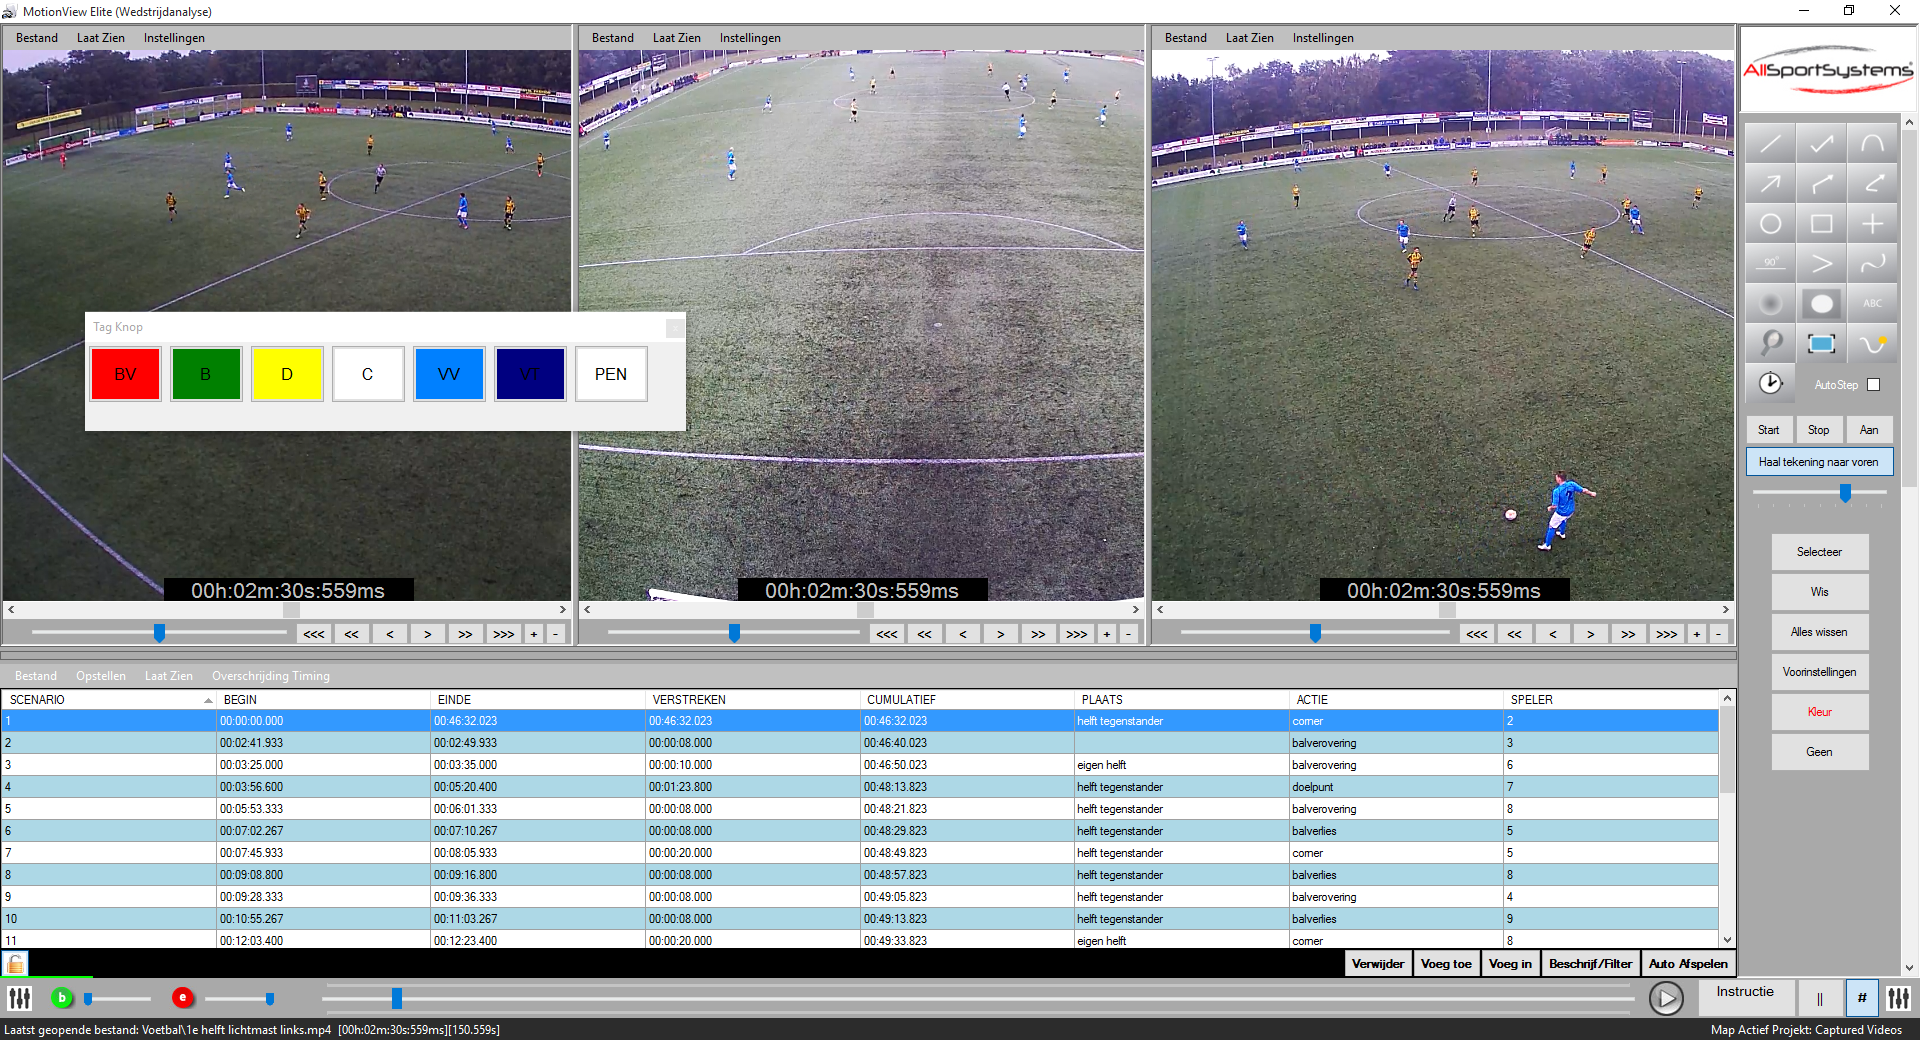 MotionView - Voetball-Soccer - Video Analyse Software